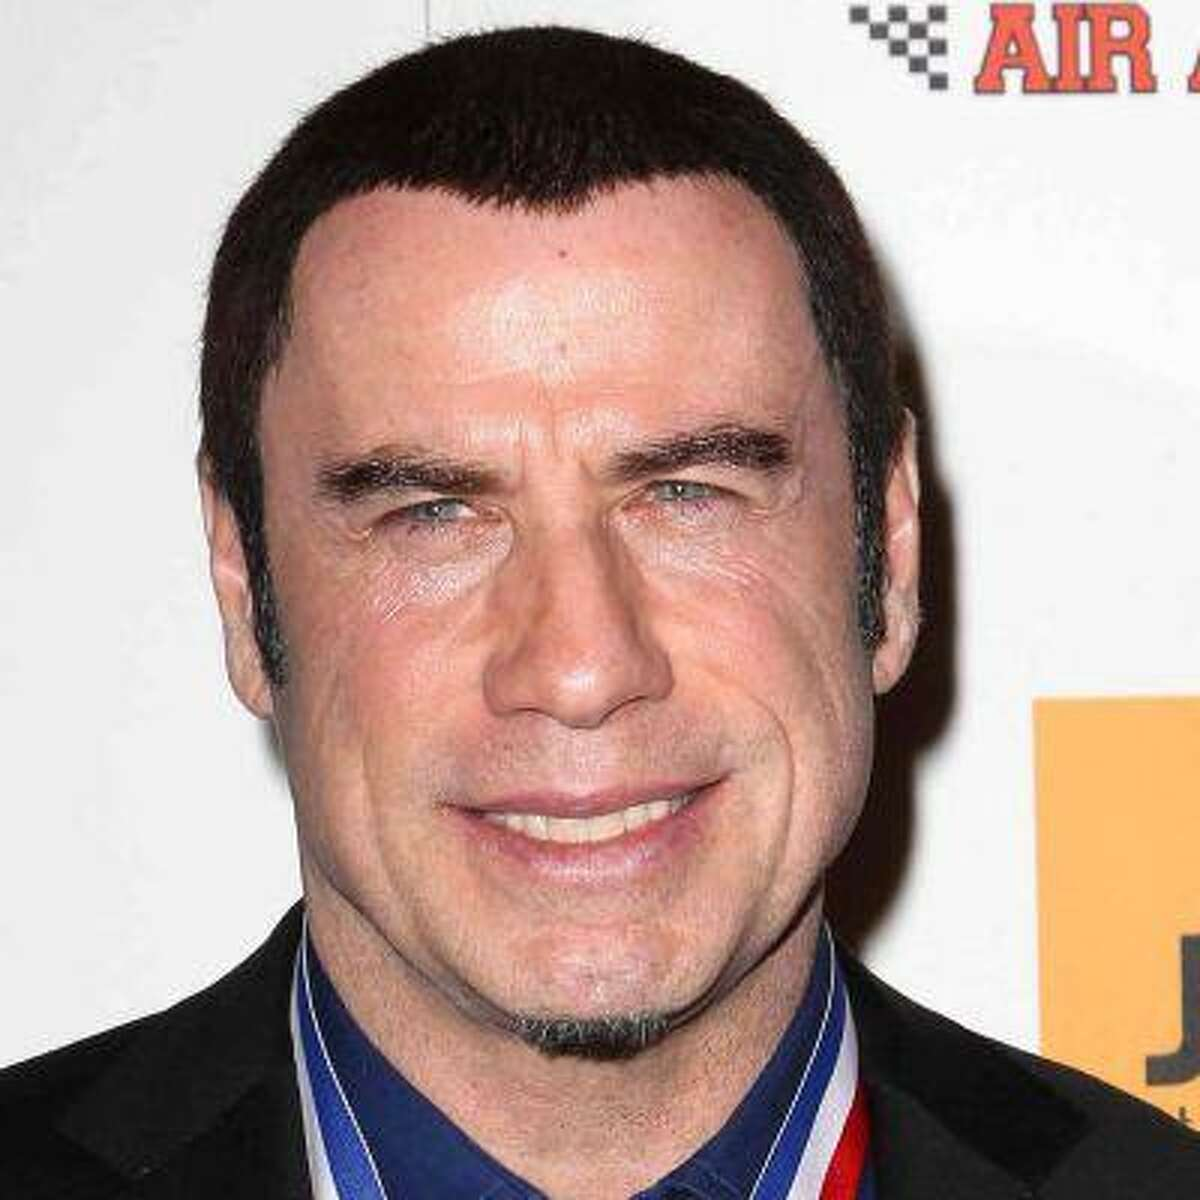 10th Annual Living Legends of Aviation Awards at The Beverly Hilton Hotel - Arrivals Featuring: John Travolta Where: Los Angeles, California, United States When: 18 Jan 2013 Credit: FayesVision/WENN.com